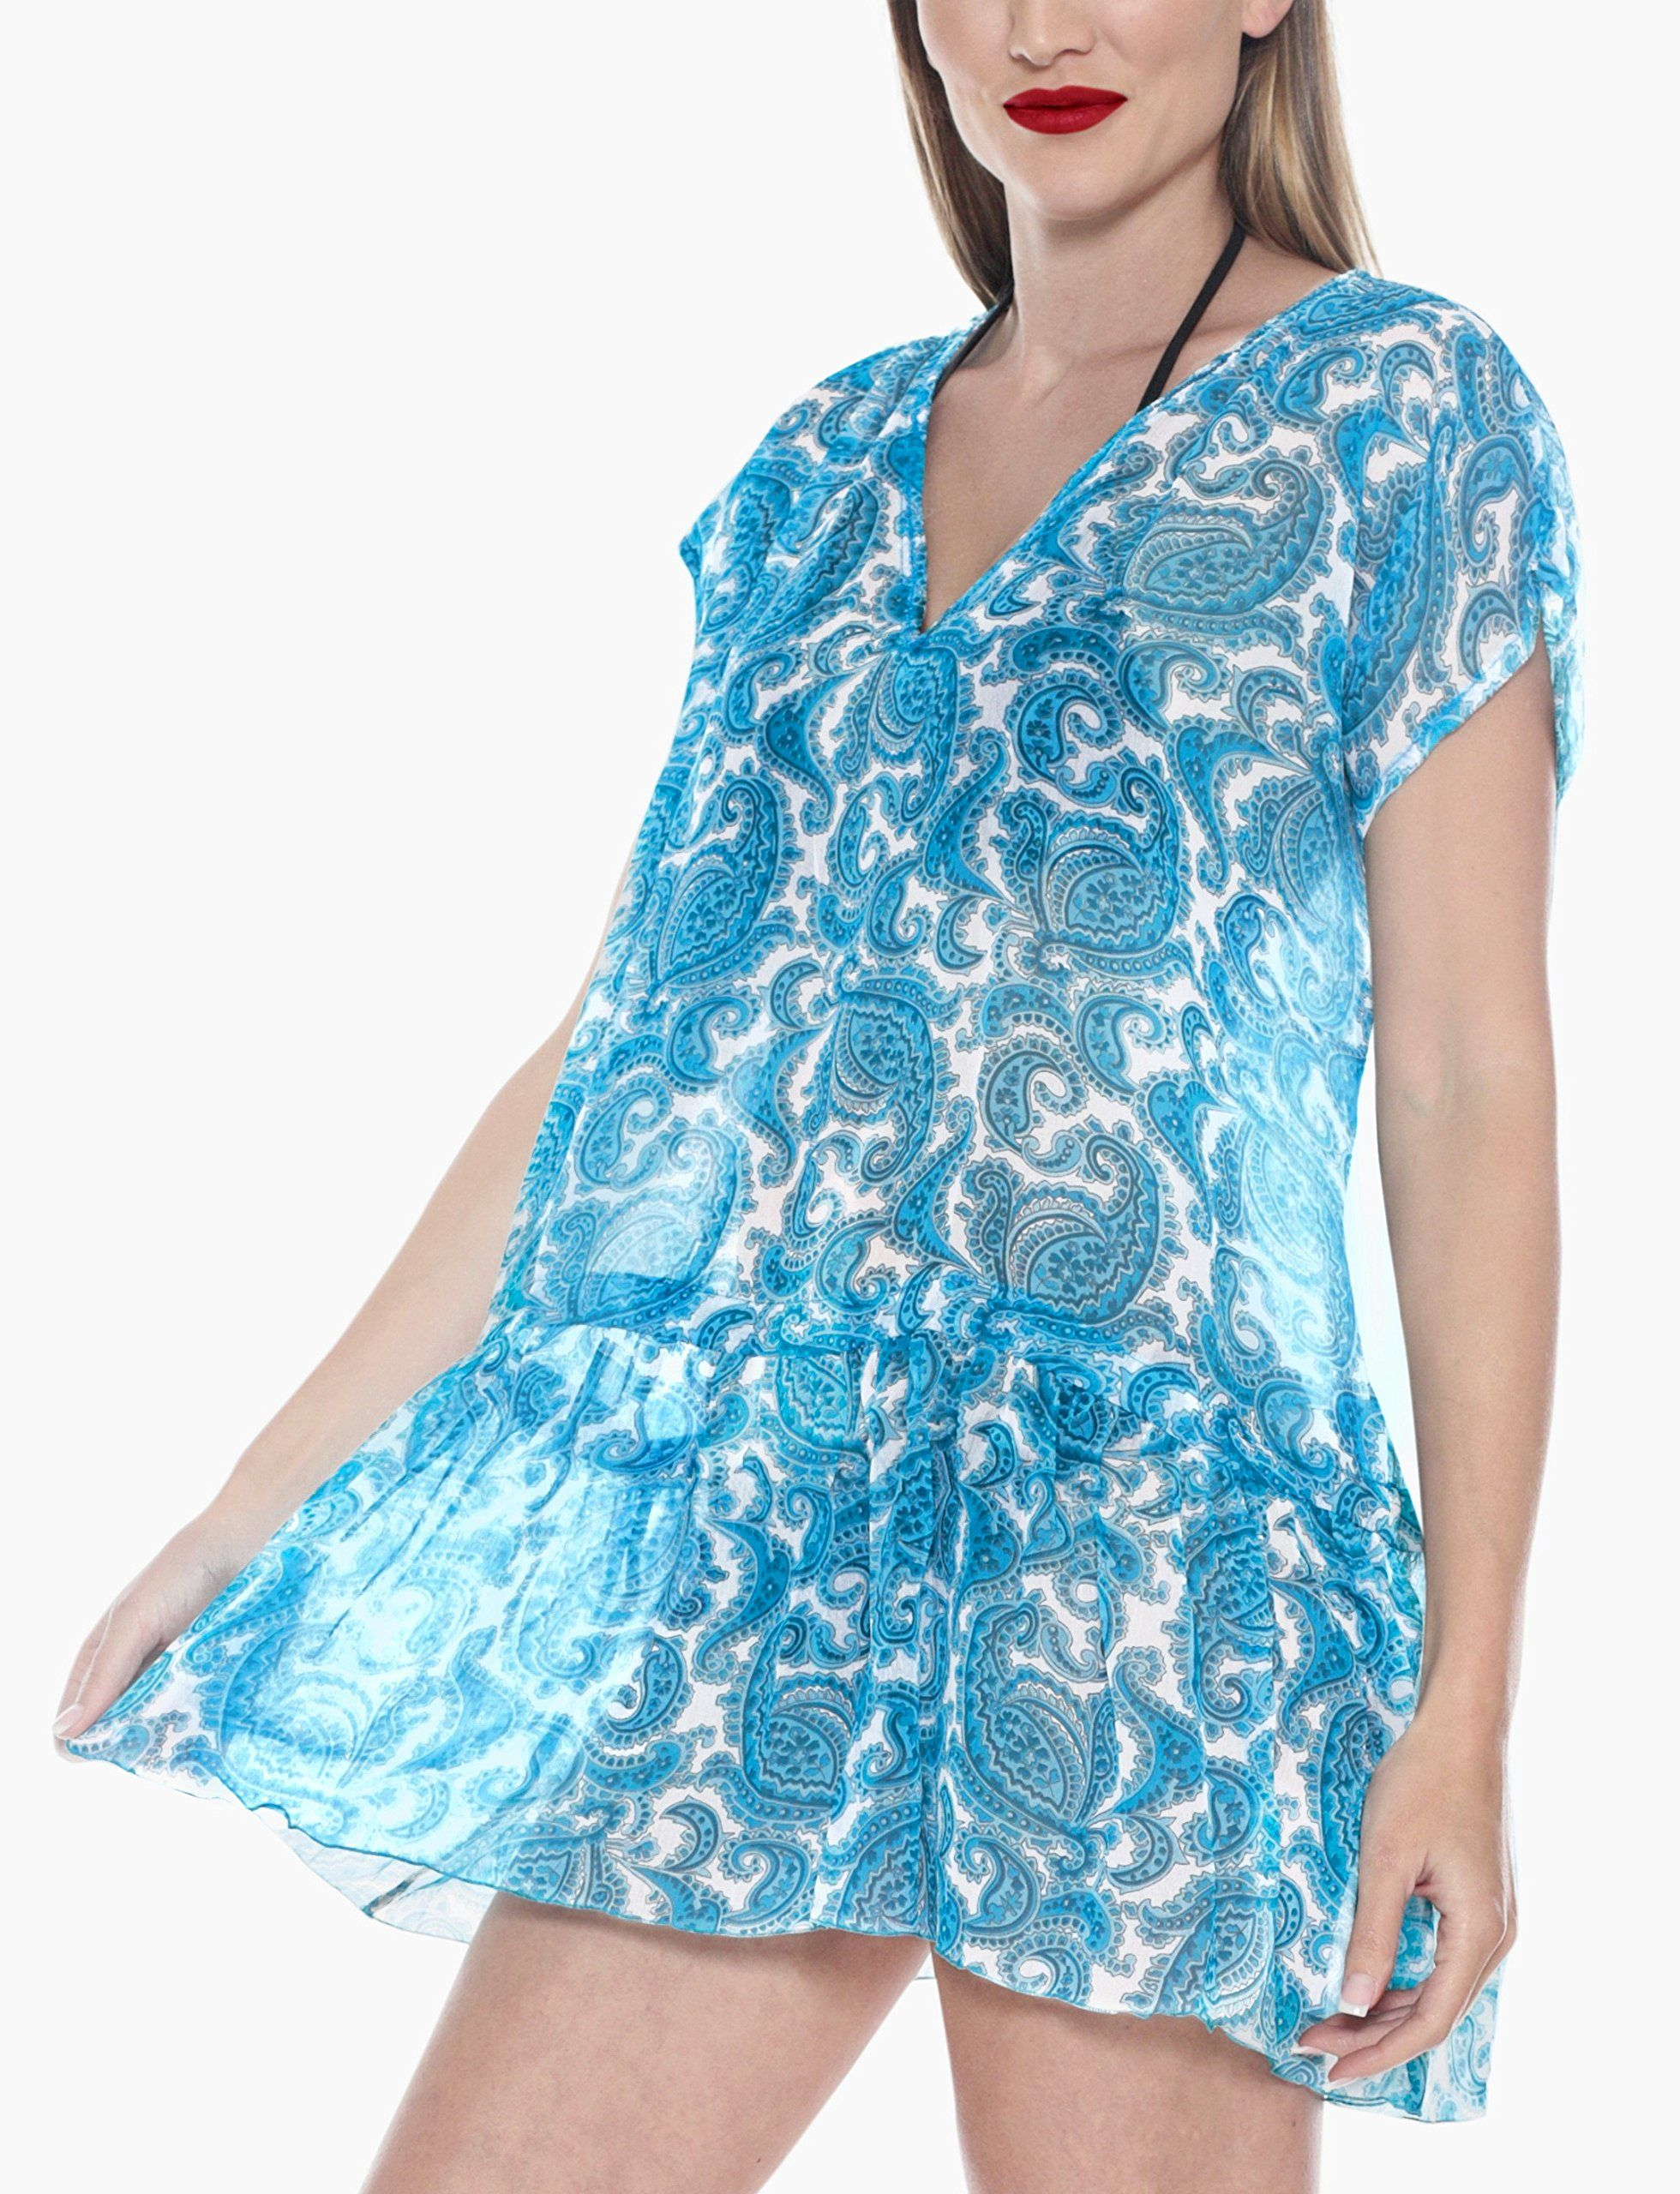 3f05be2226 Women Maternity Clothes - La Leela Sheer Chiffon Allover Printed Beach  Kaftan Swim Cover up BlueLarge >>> Learn more at the image web link.